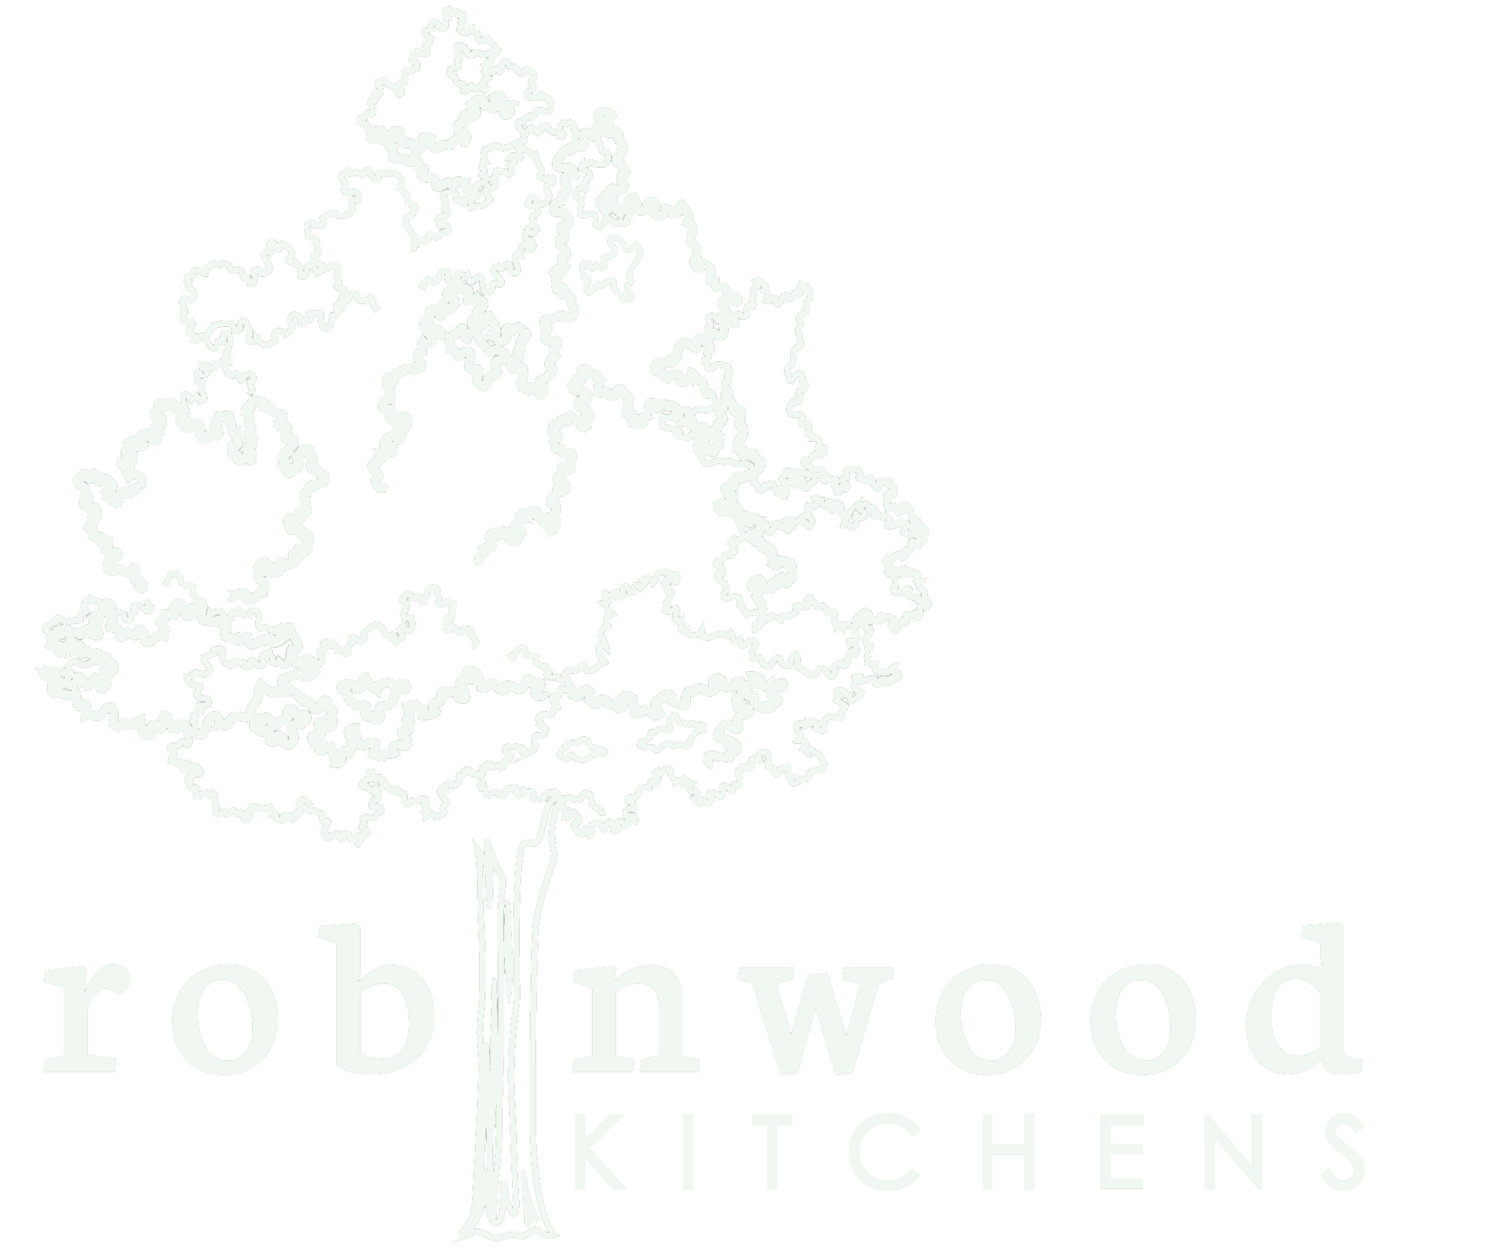 Robinwood Kitchens